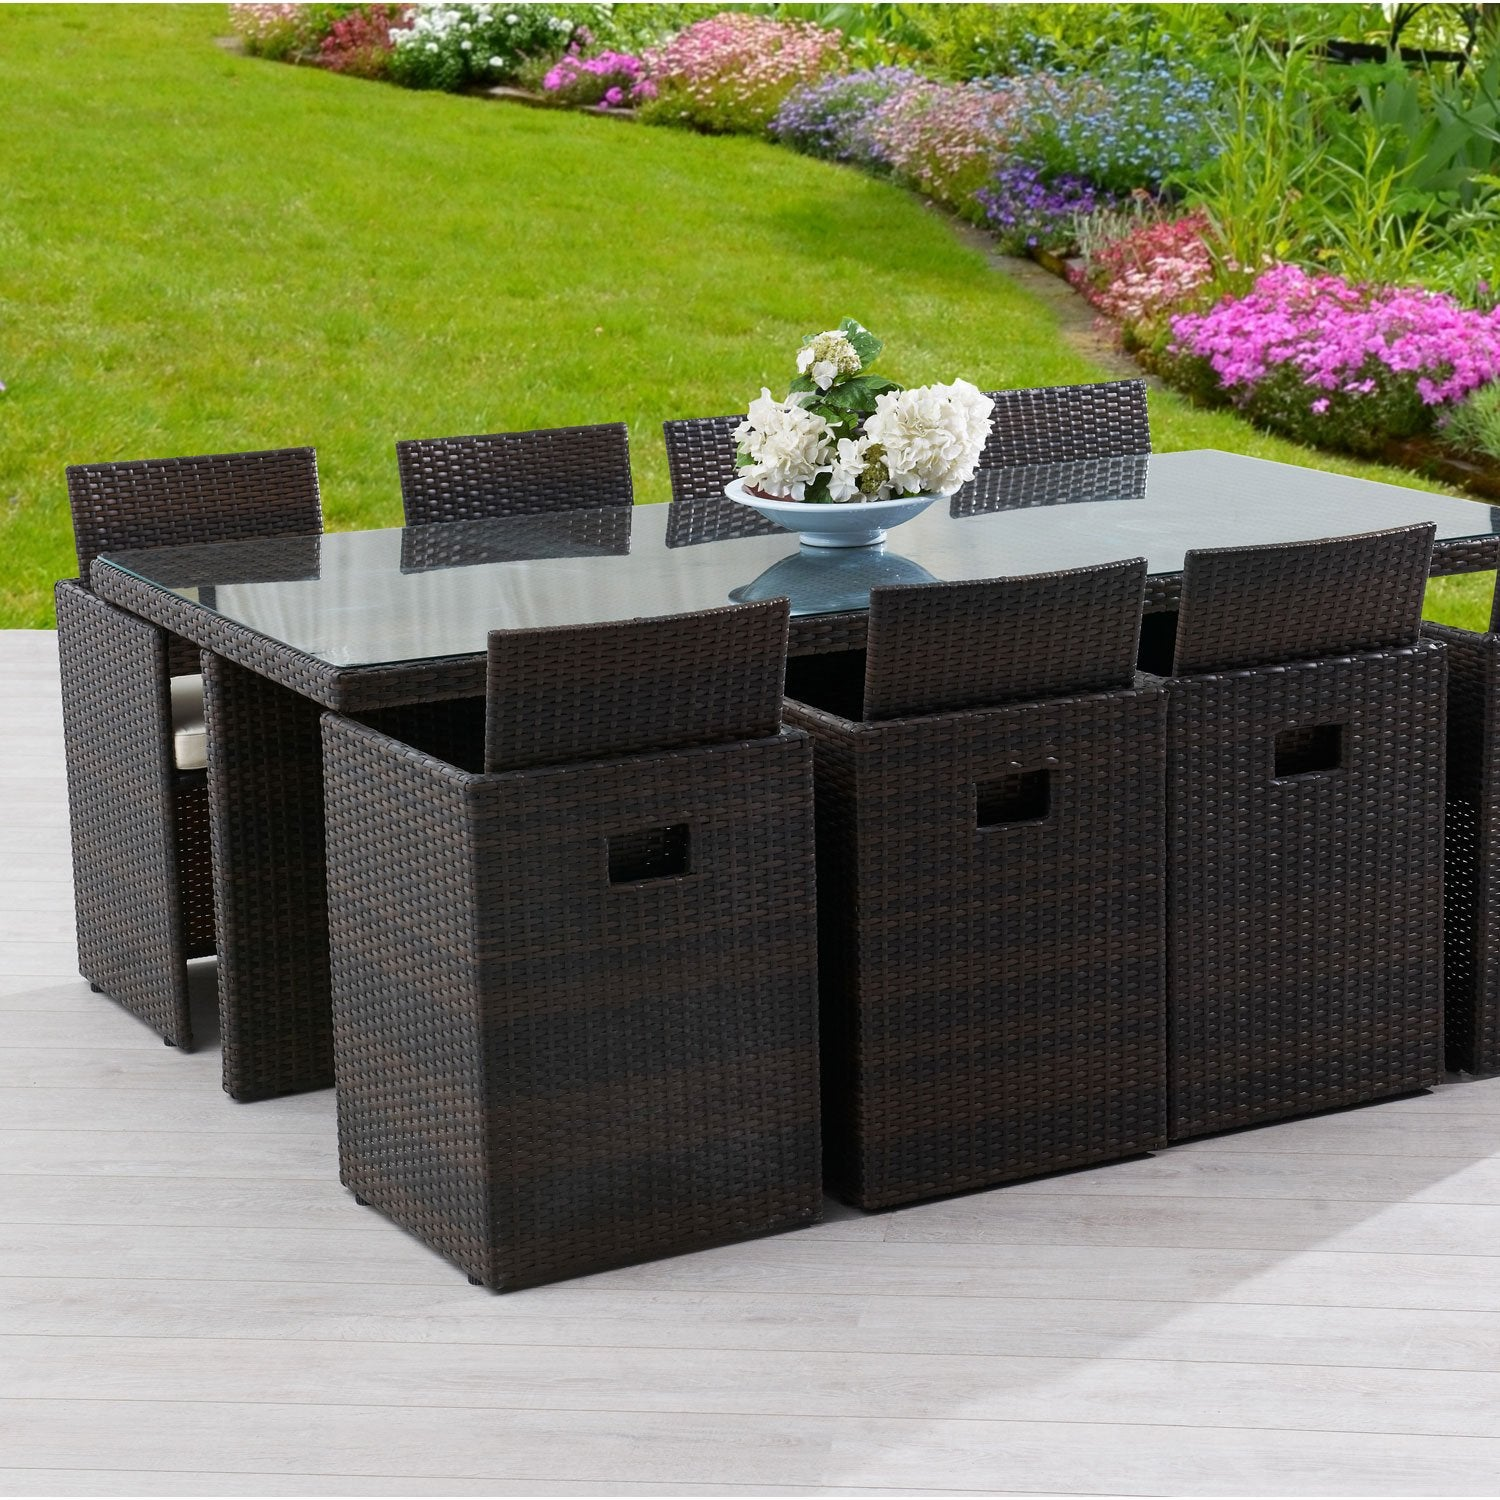 Salon de jardin encastrable r sine tress e marron 1 table for Salon de jardin pas cher resine tressee